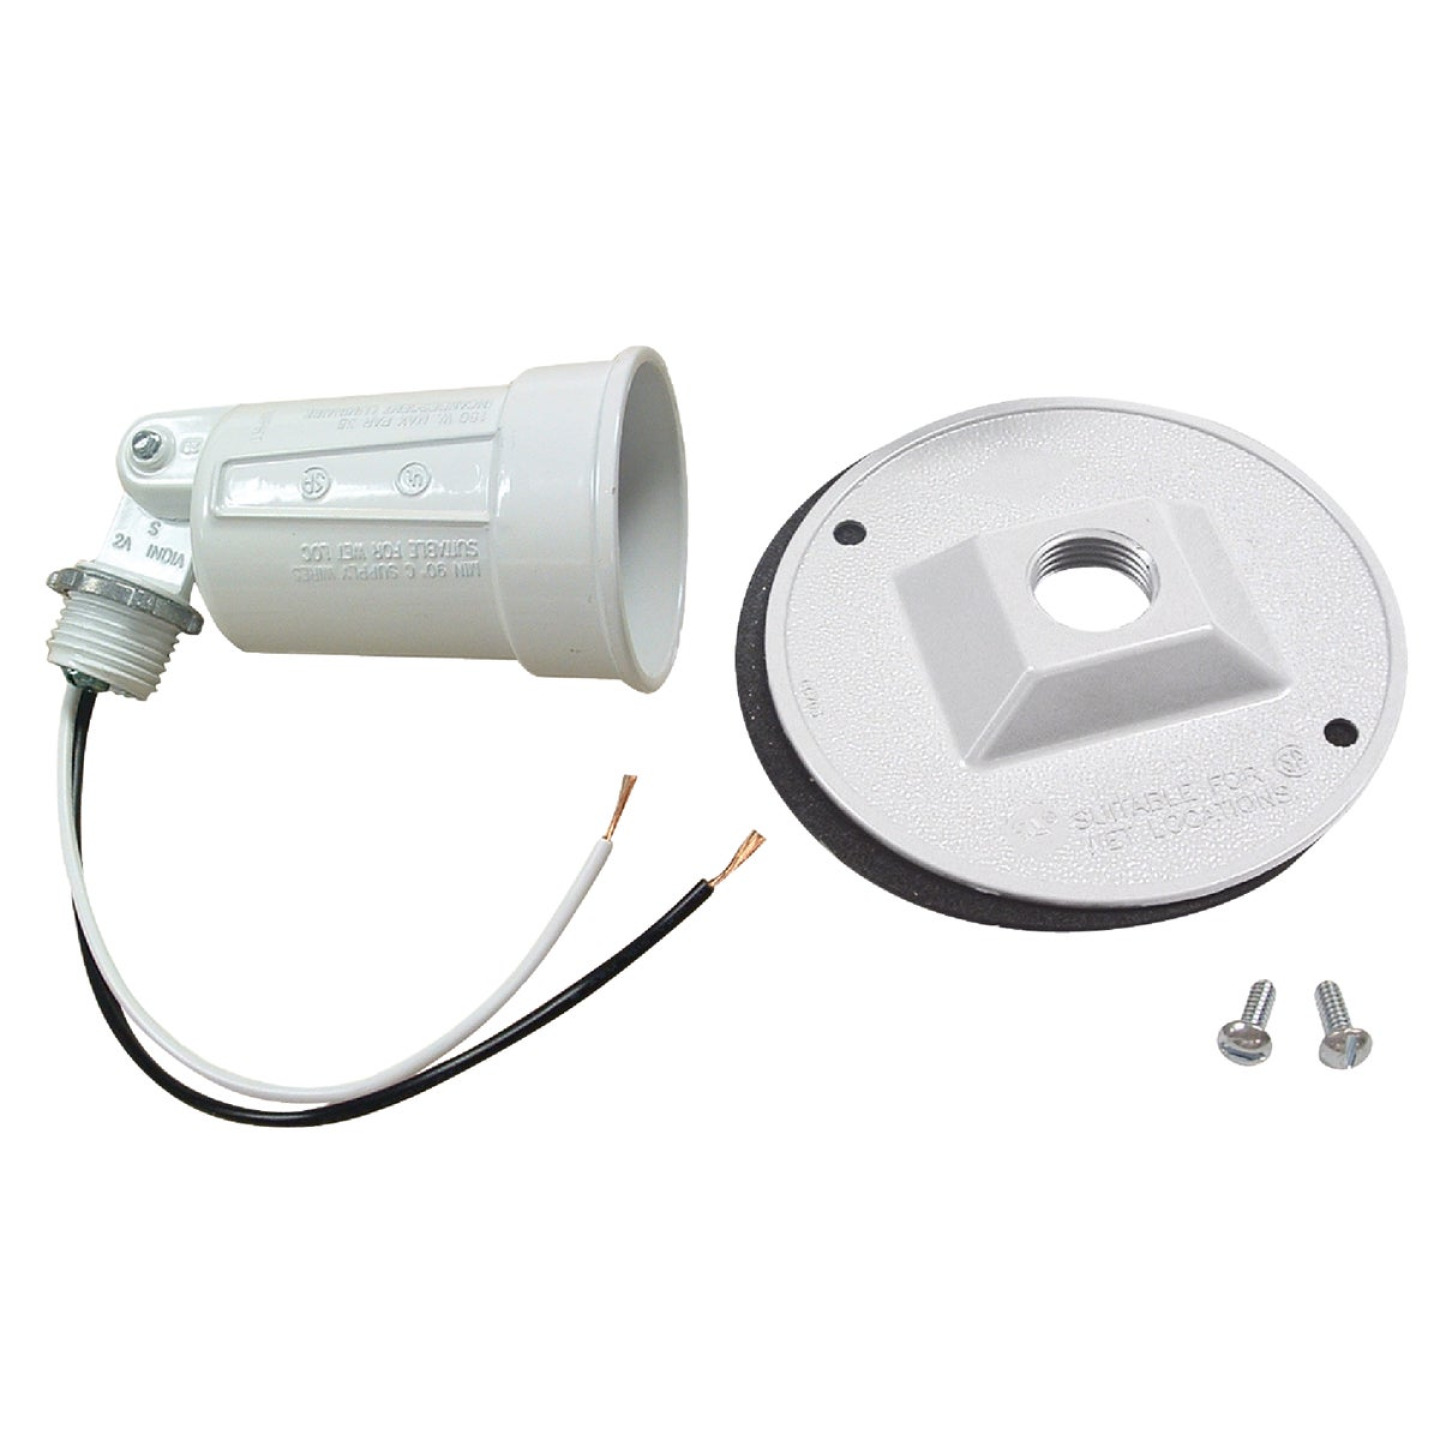 Bell White 150W Die-Cast Metal Round Weatherproof Single Outdoor Lampholder with Cover Image 1